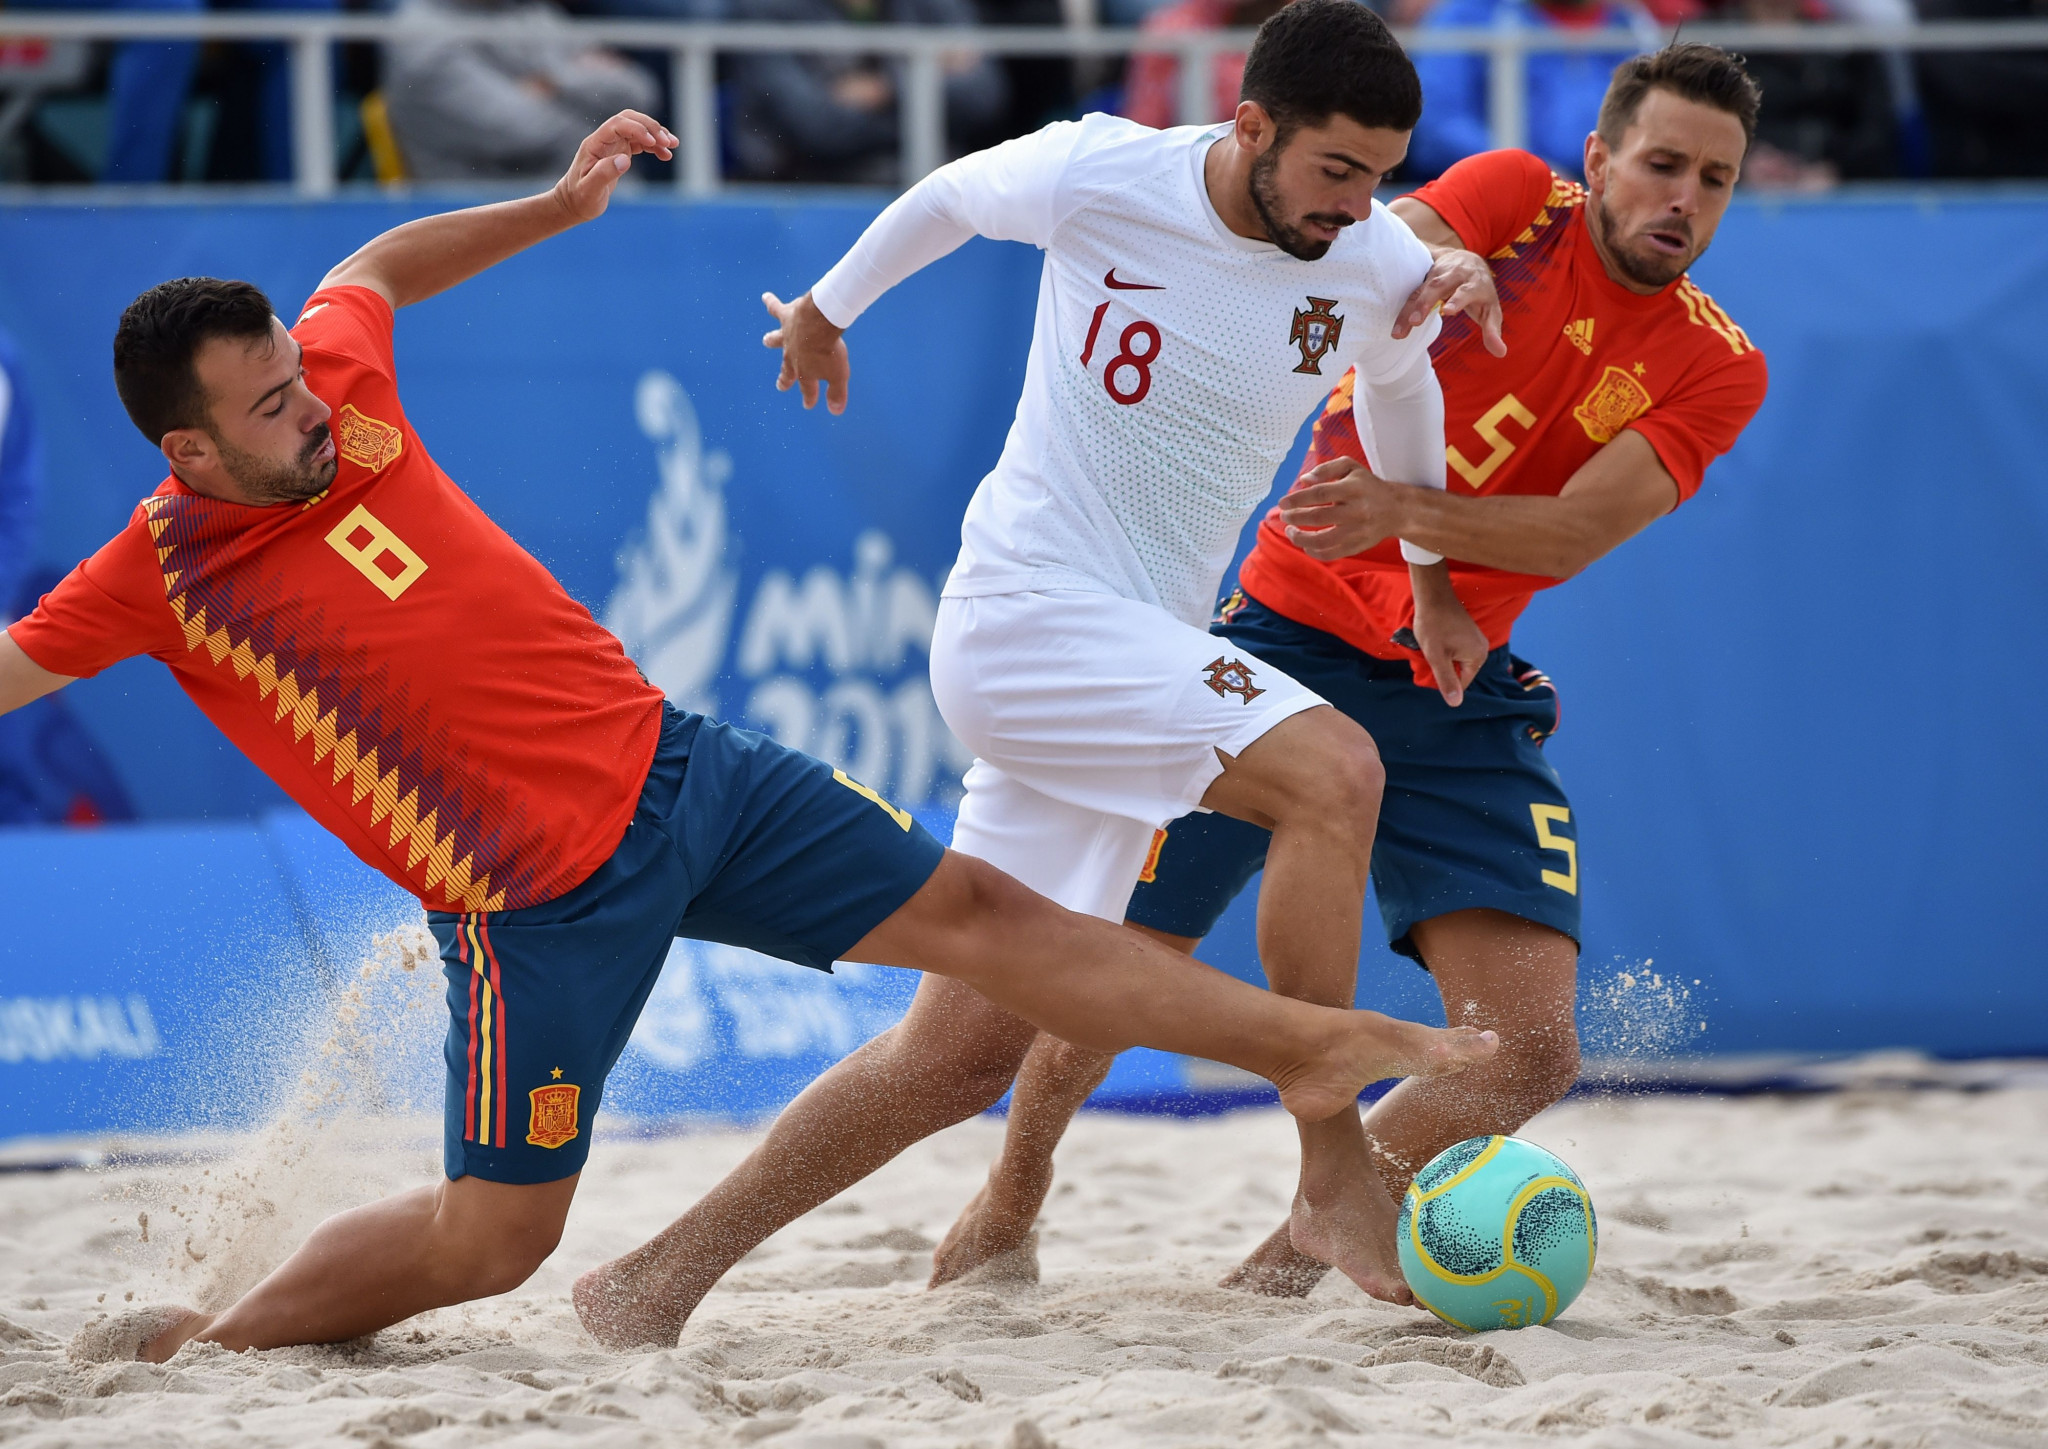 Portugal overwhelm Spain to win Minsk 2019 beach soccer tournament